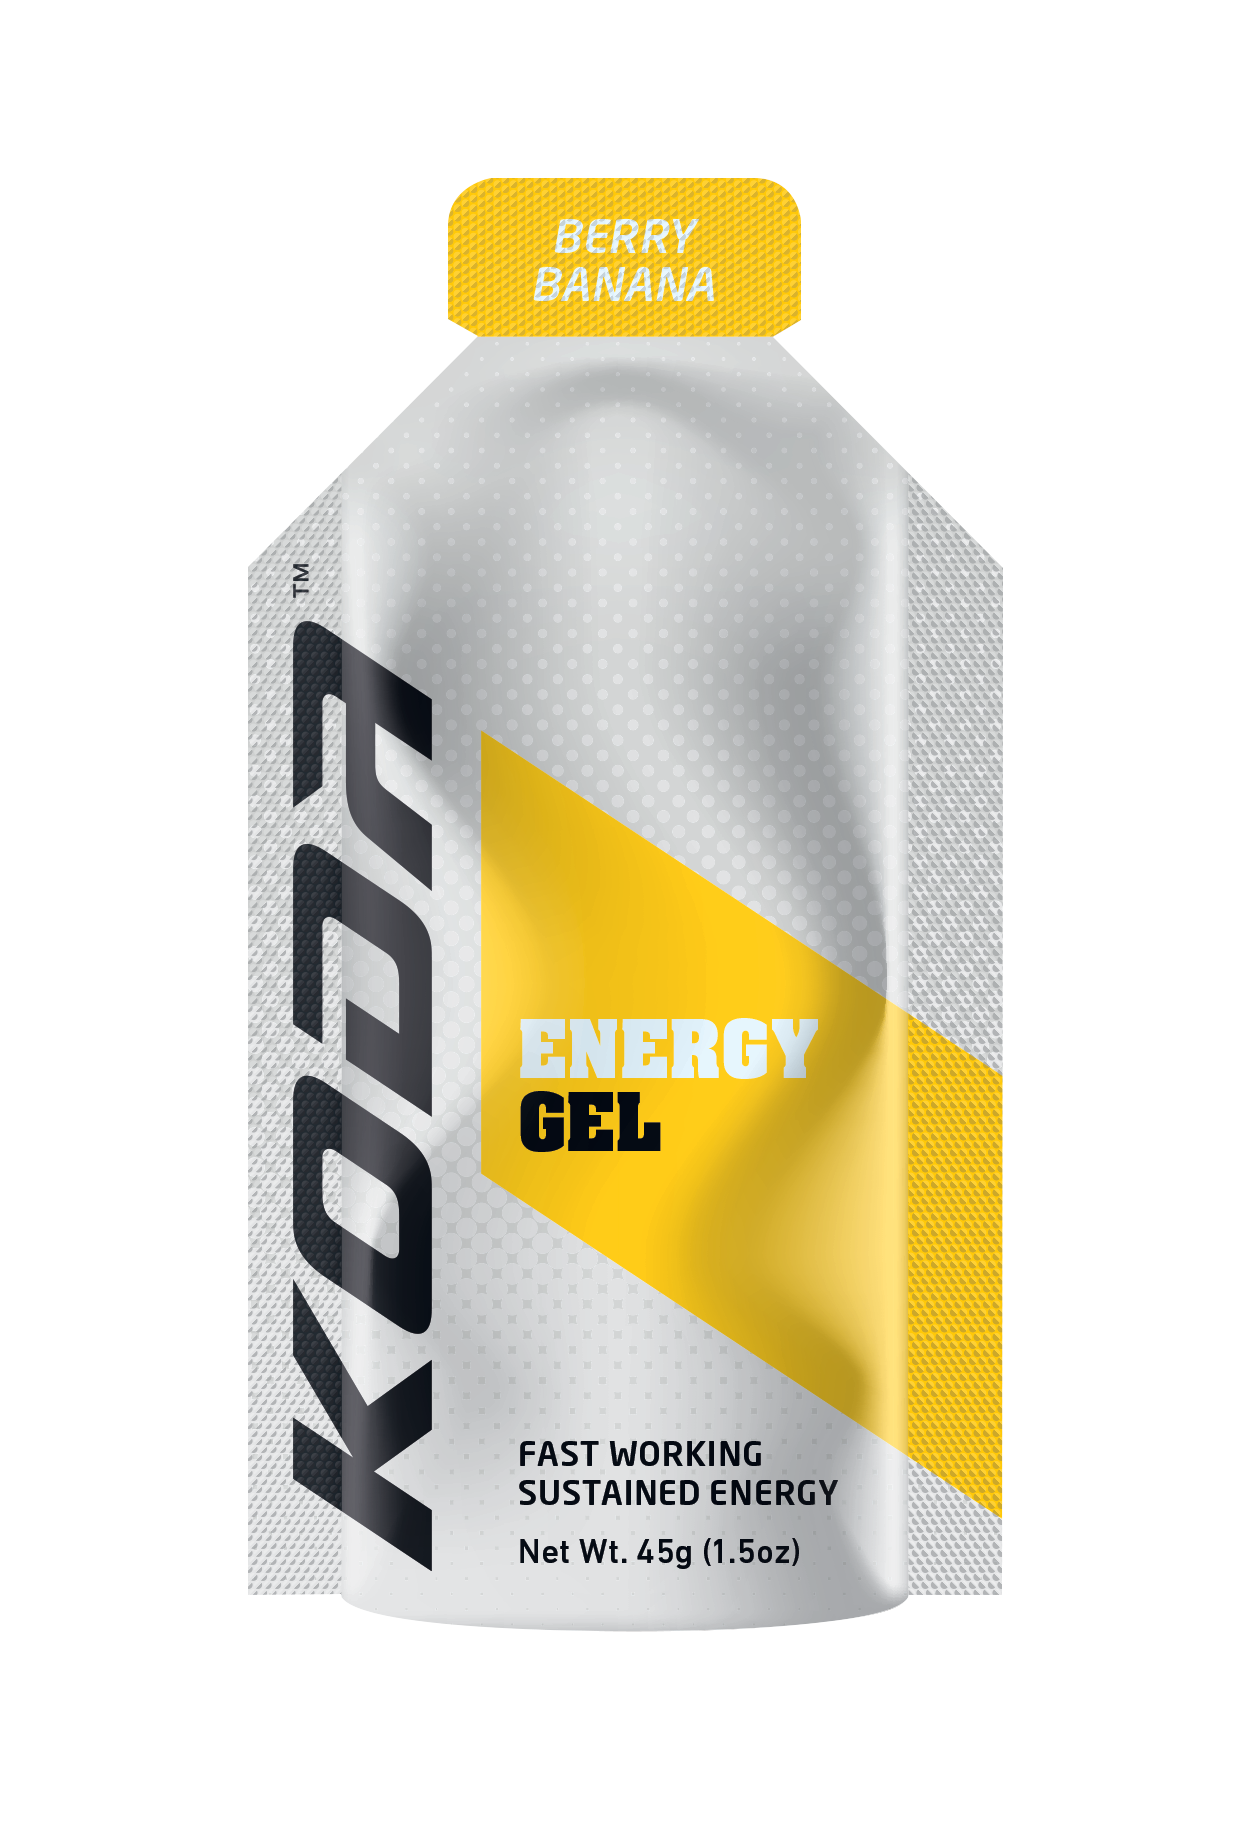 Koda Energy Gels Box Qty (24 Pack) - Berry Banana - Find Your Feet Australia Hobart Launceston Tasmania